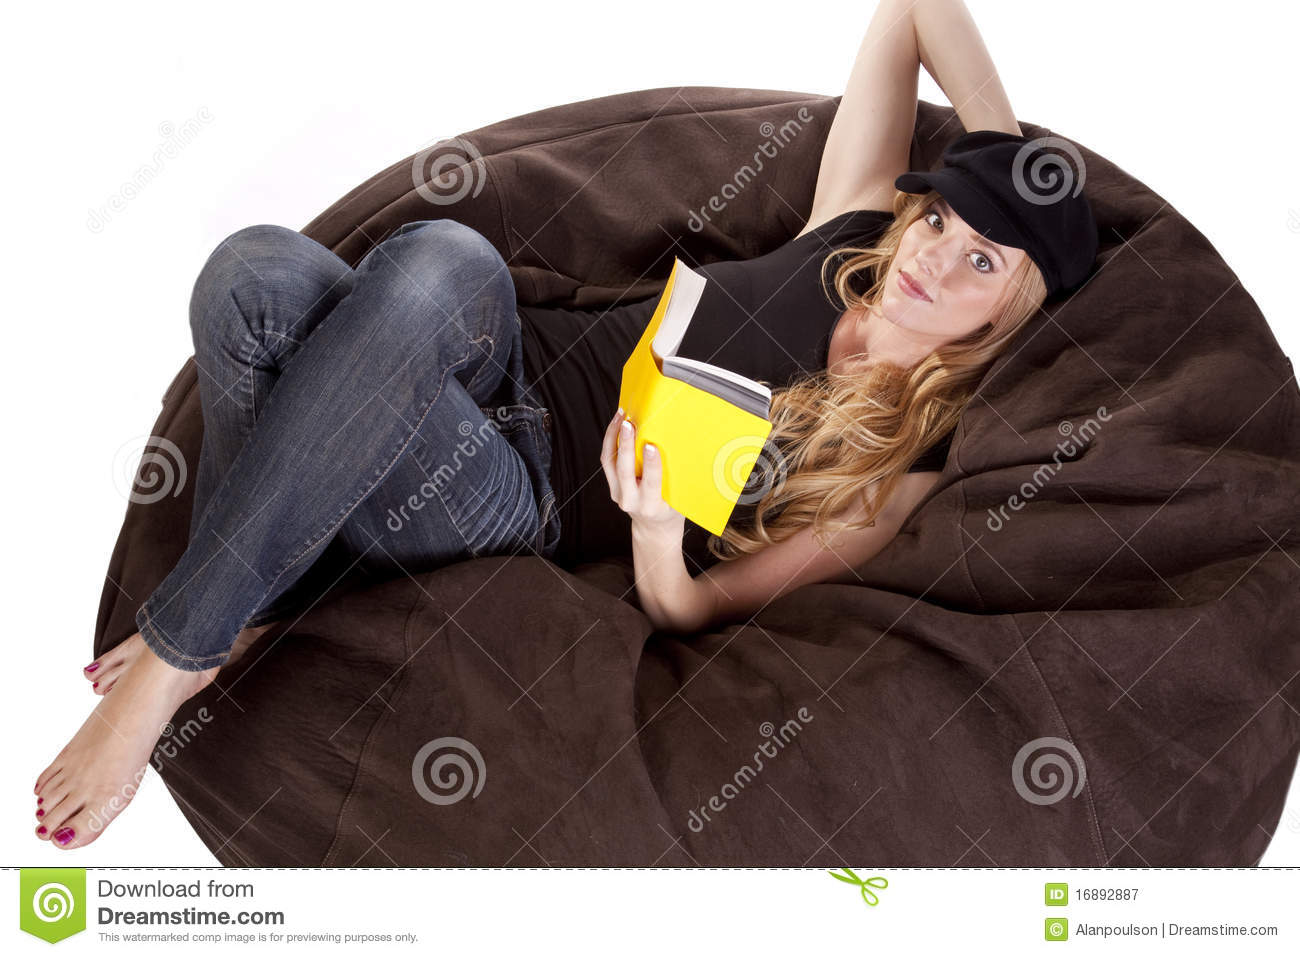 Tremendous Woman On Bean Bag Reading Stock Image Image Of Literature Caraccident5 Cool Chair Designs And Ideas Caraccident5Info